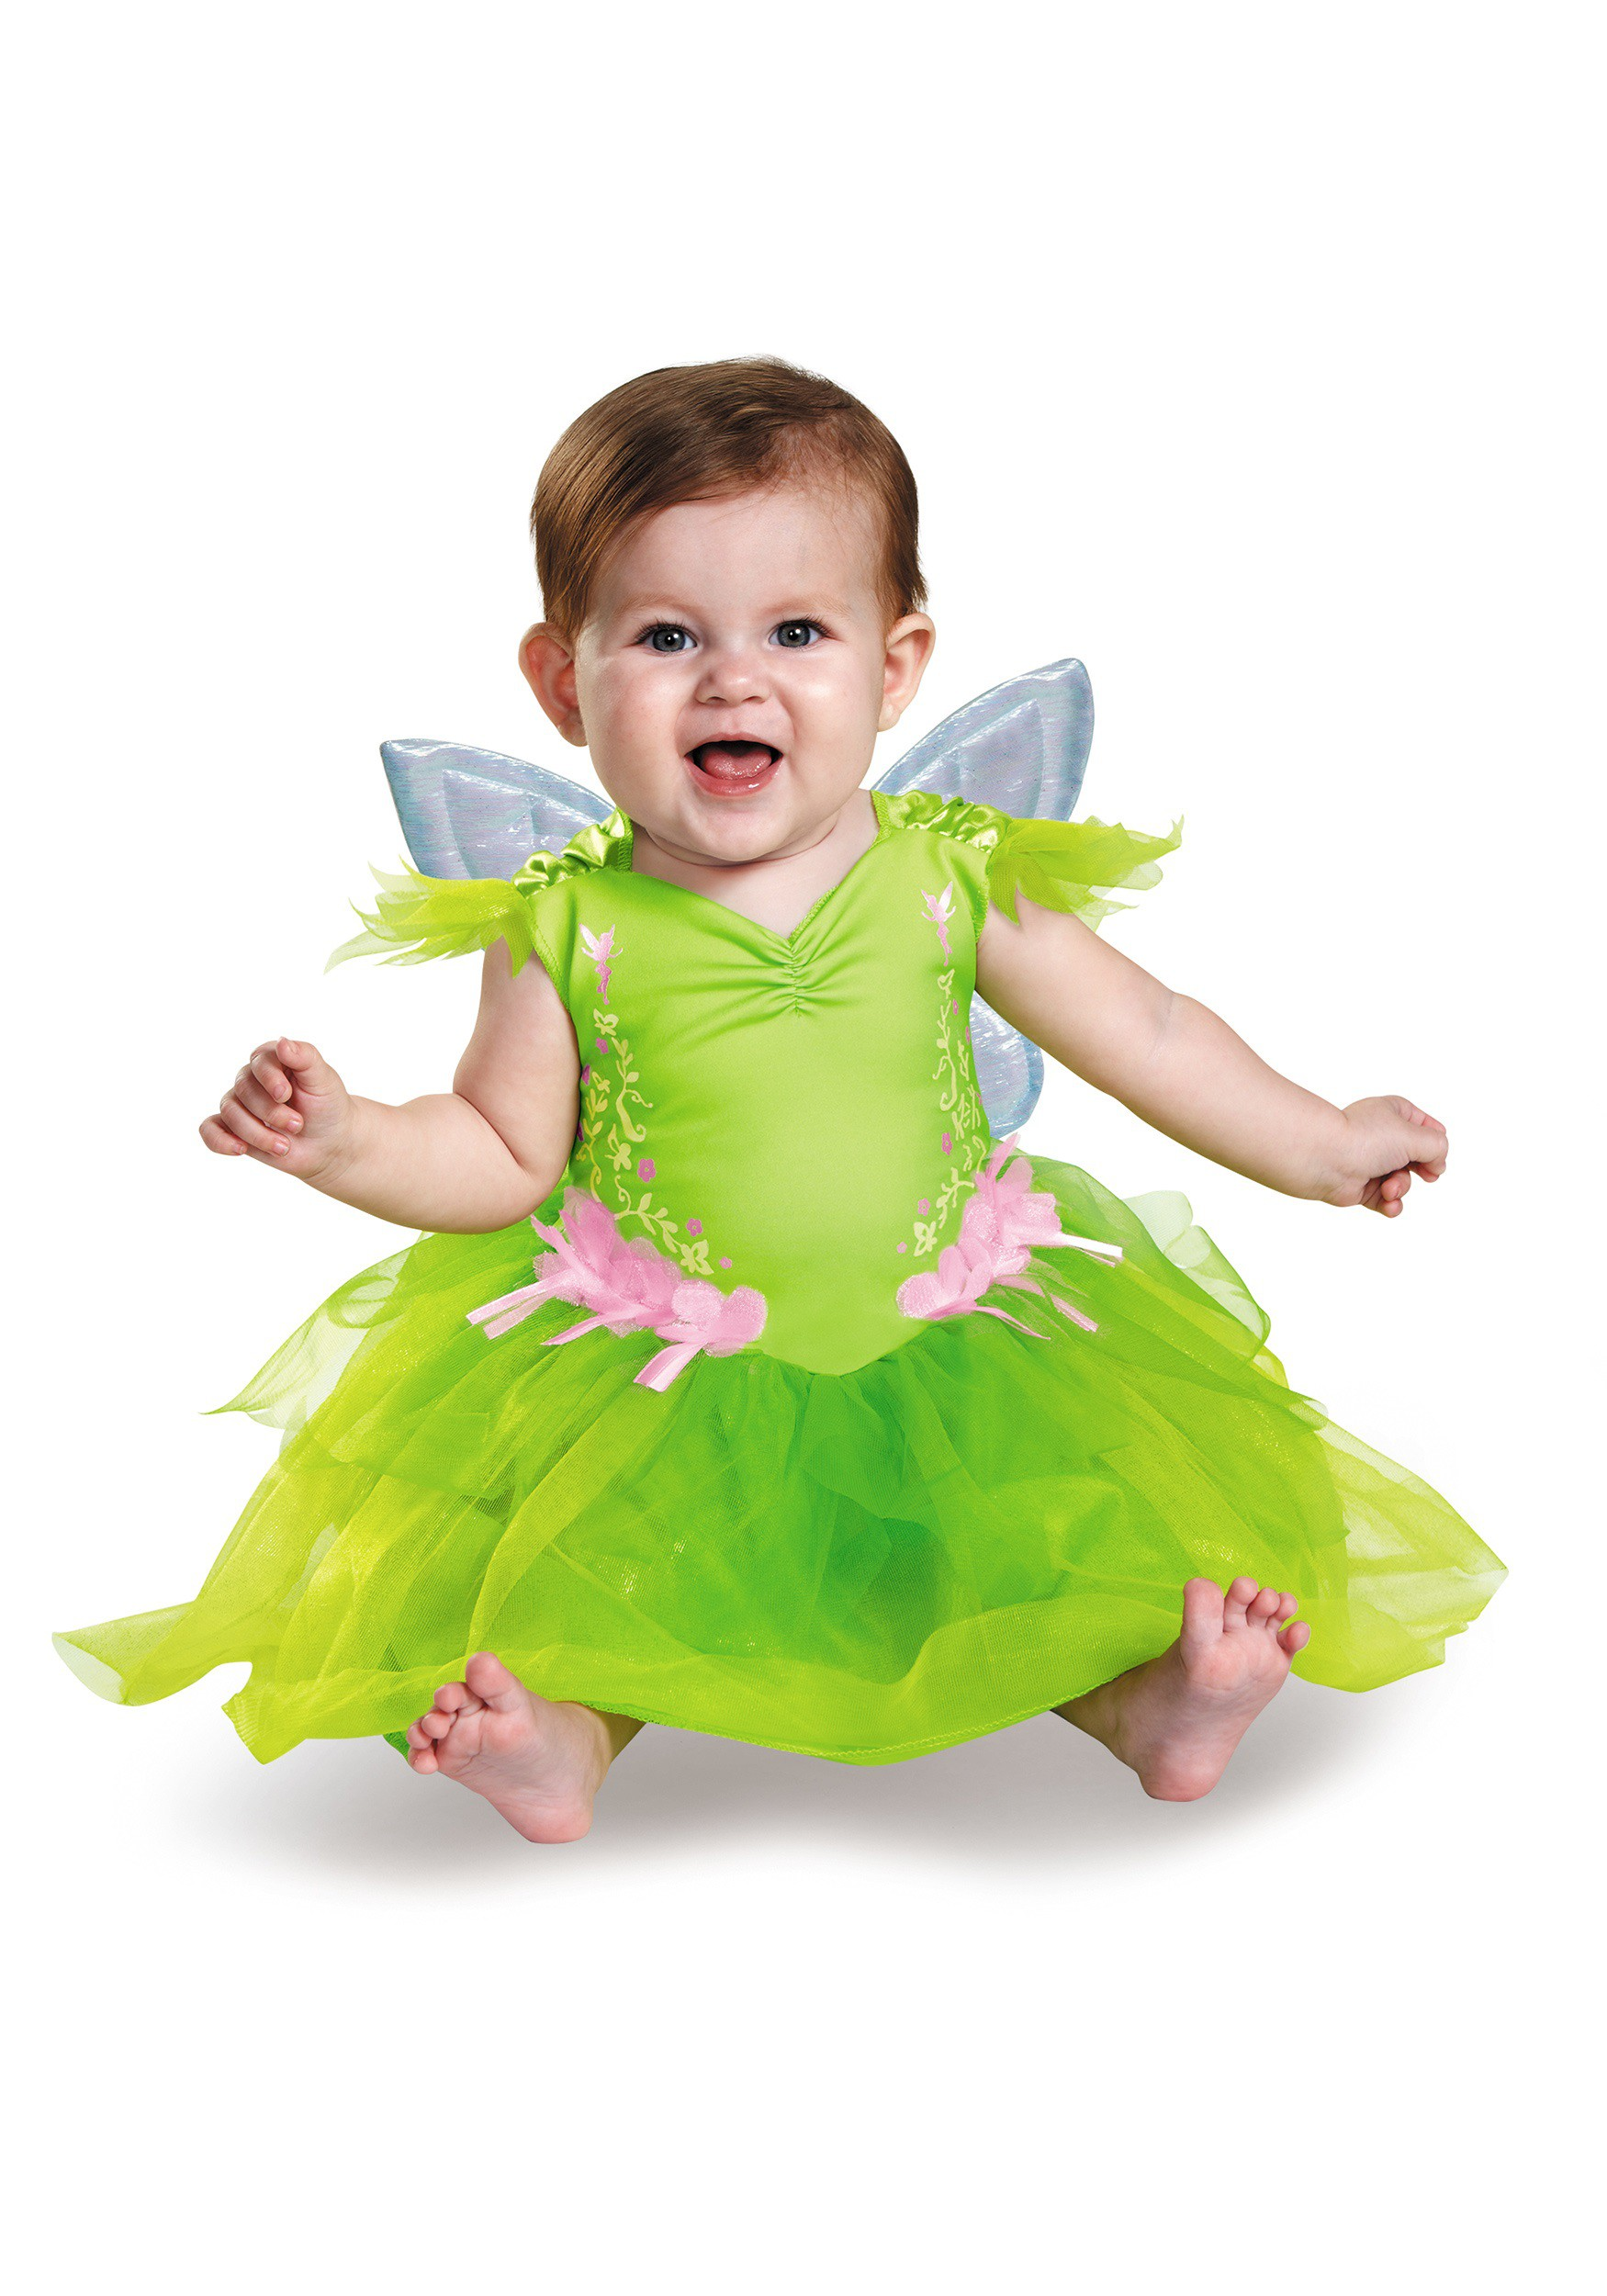 The Toddler Tinker Bell Classic Costume is the perfect Halloween costume for you. Show off your Girls costume and impress your friends with this top quality selection from Costume SuperCenter!5/5(1).